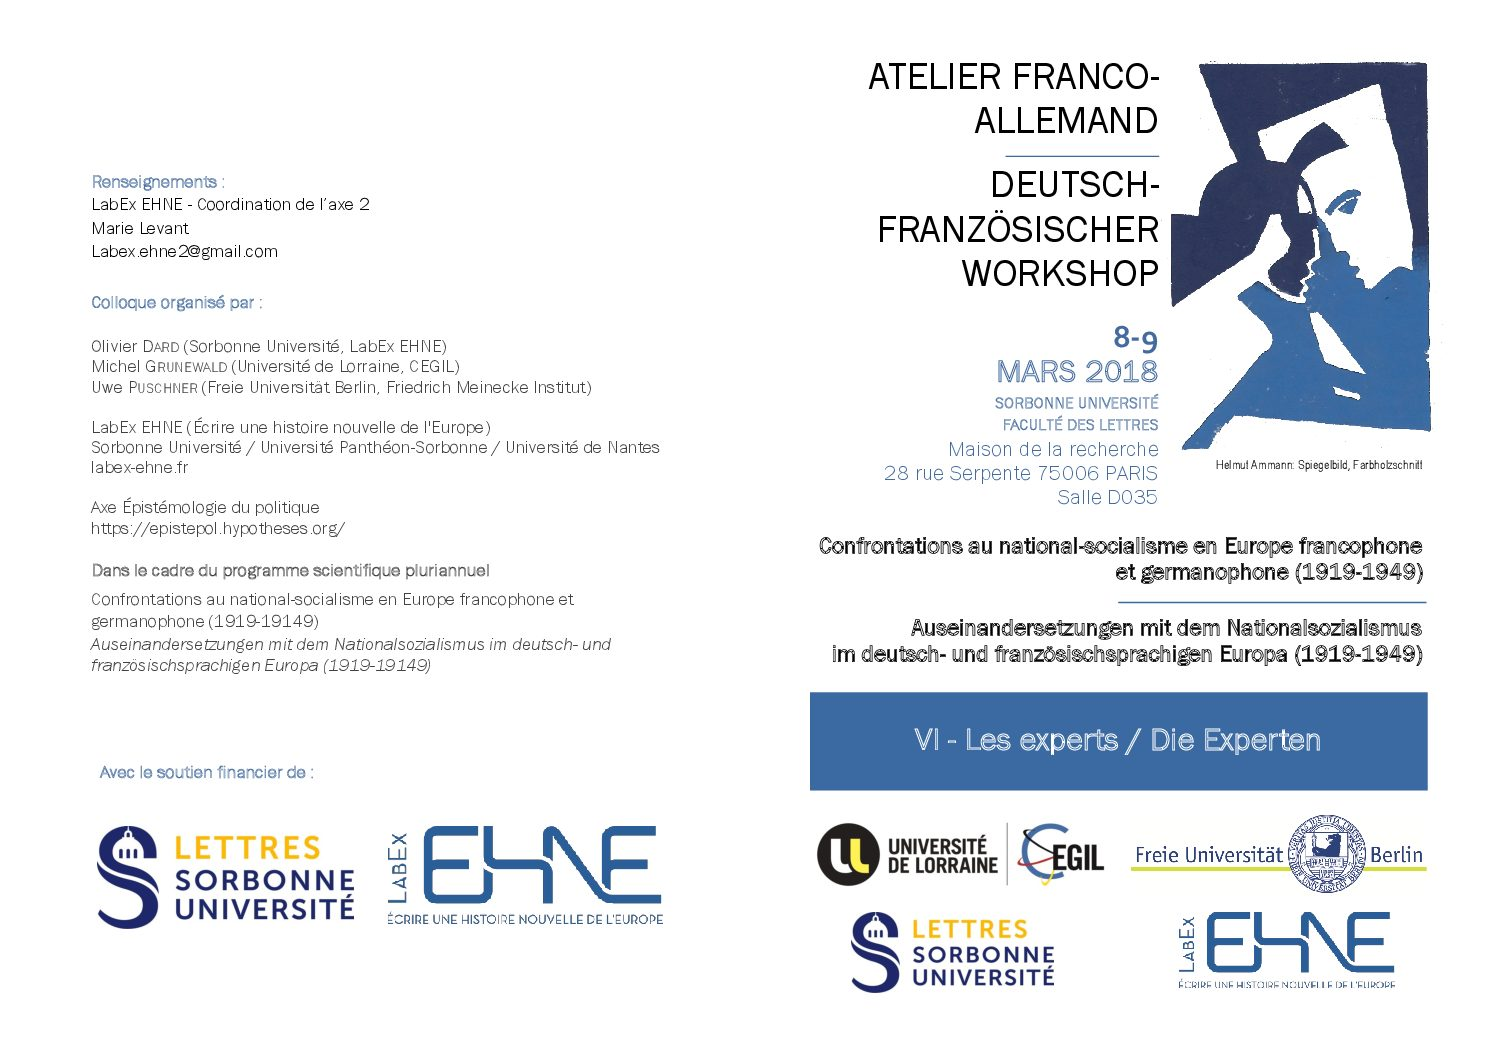 Atelier franco-allemand / Deutsch-Französischer Workshop